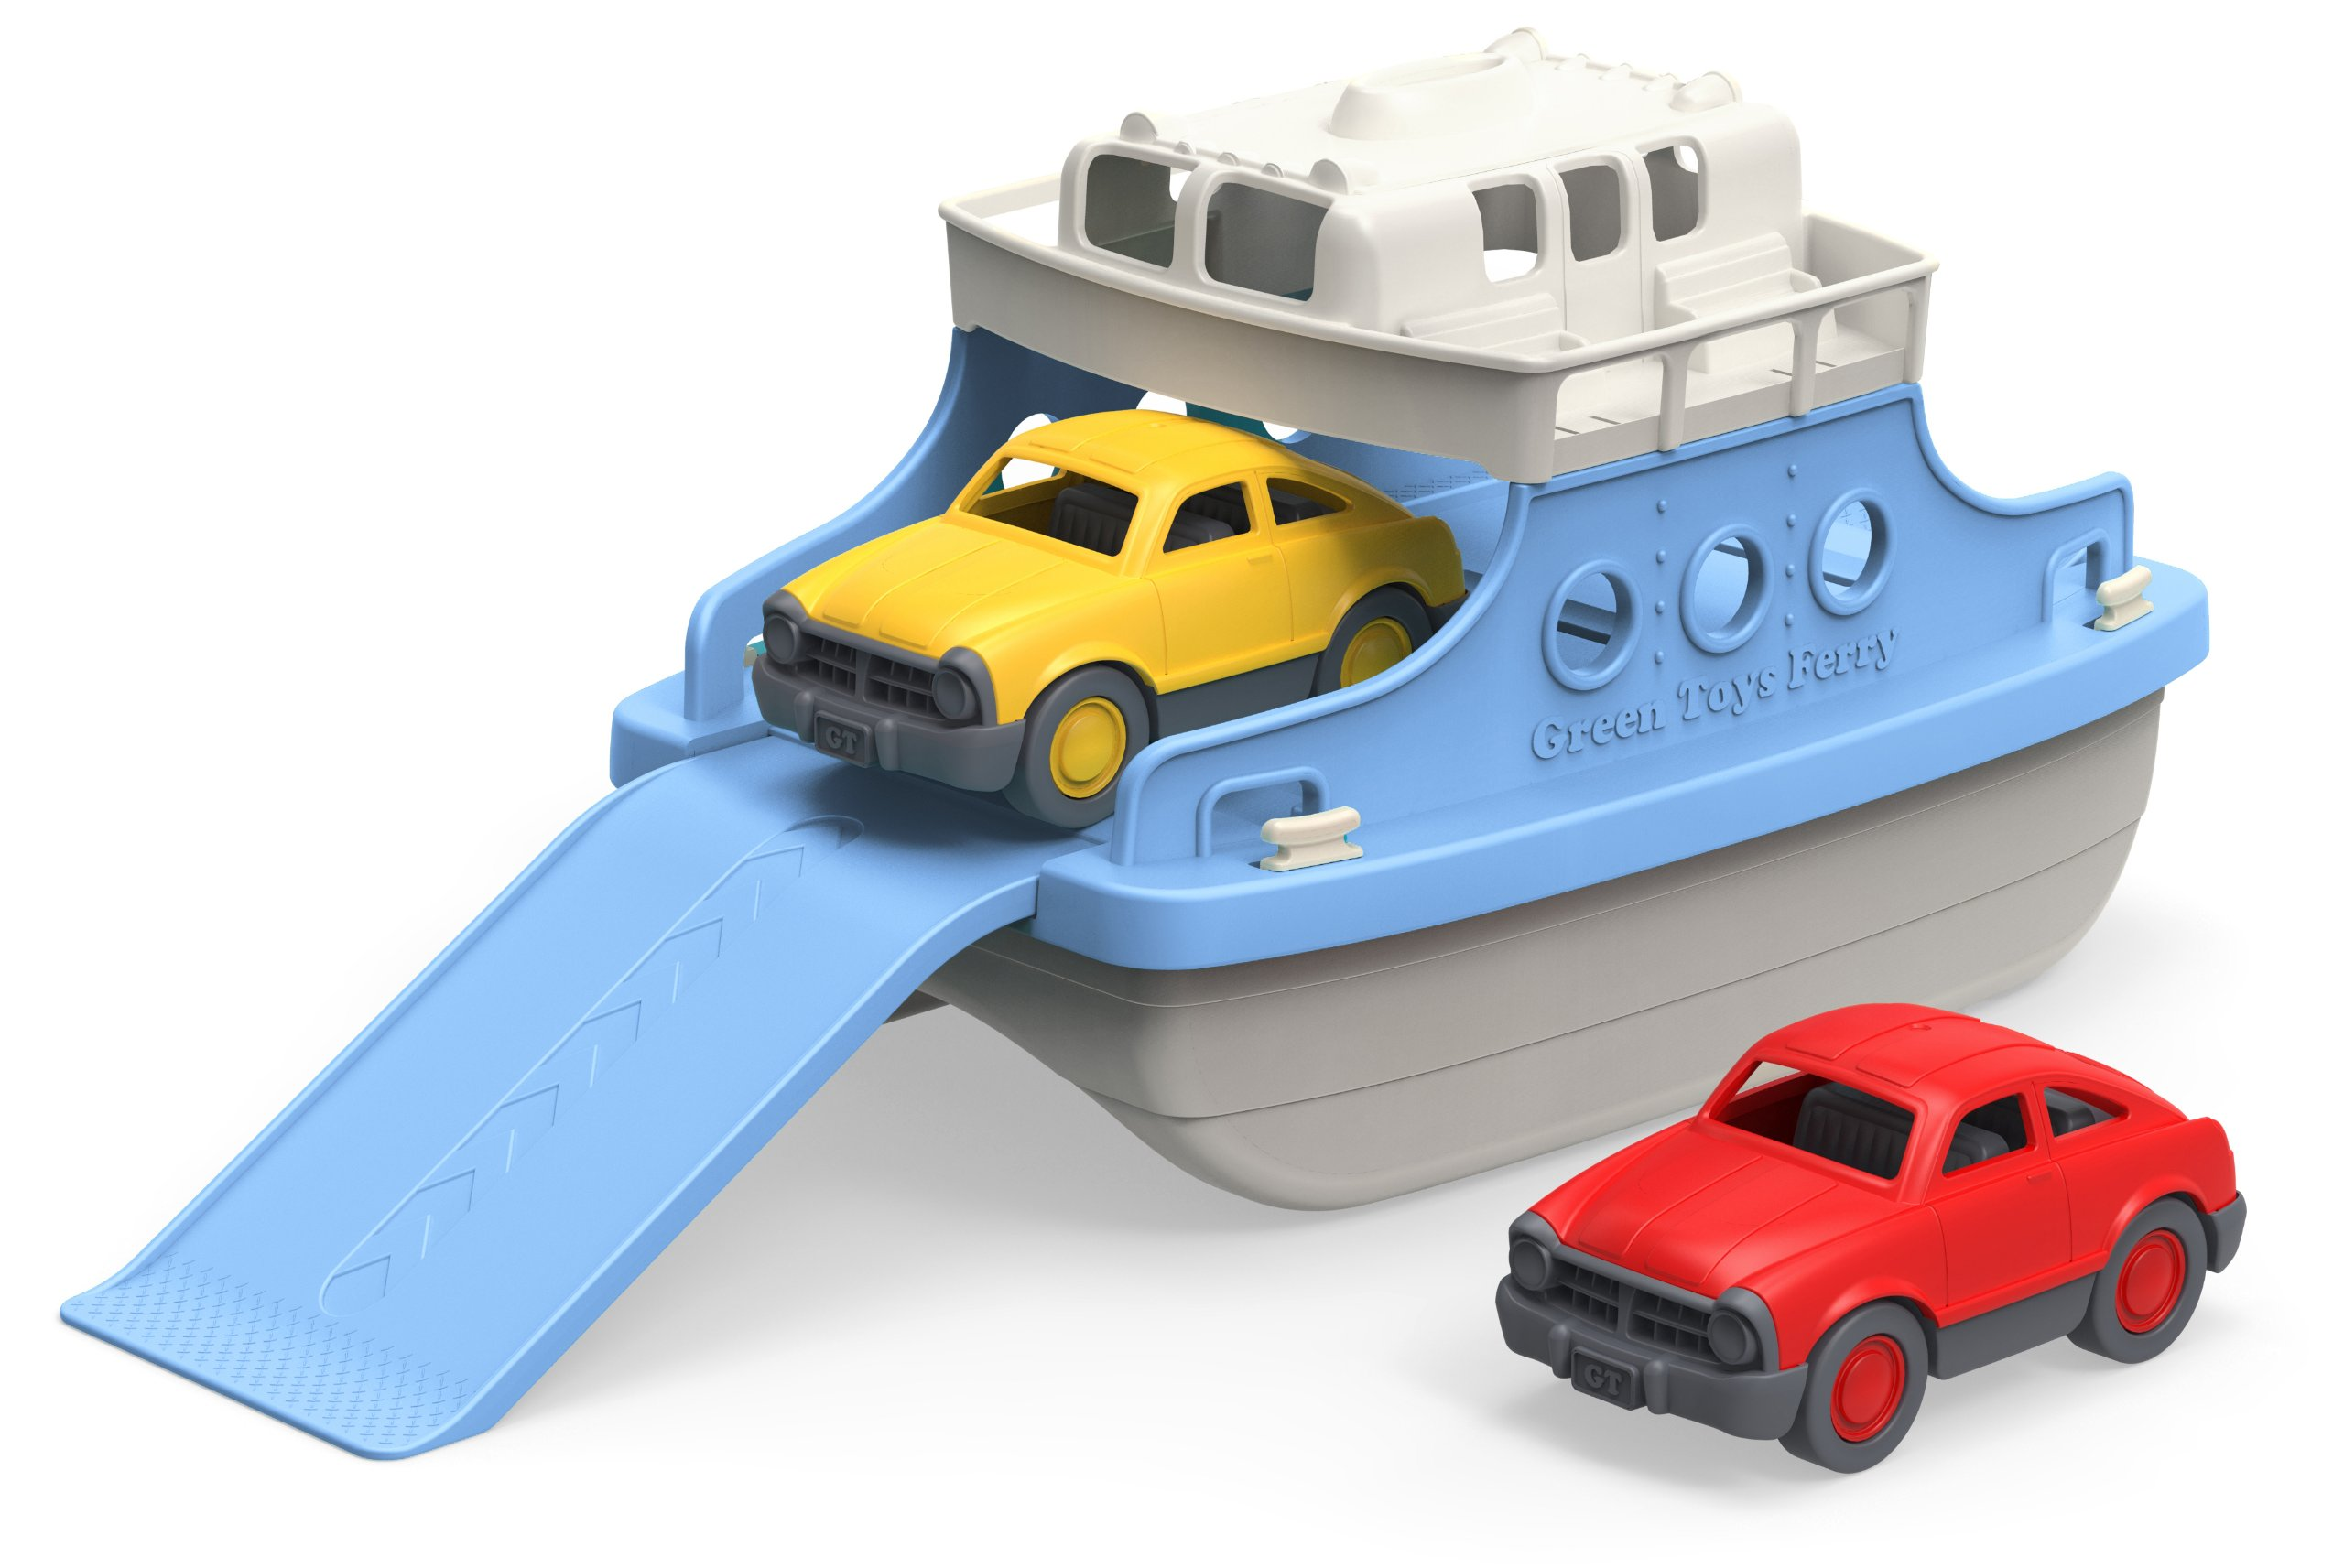 Green Toys Ferry Boat with Mini Cars Bathtub Toy, Blue/White By Green Toys